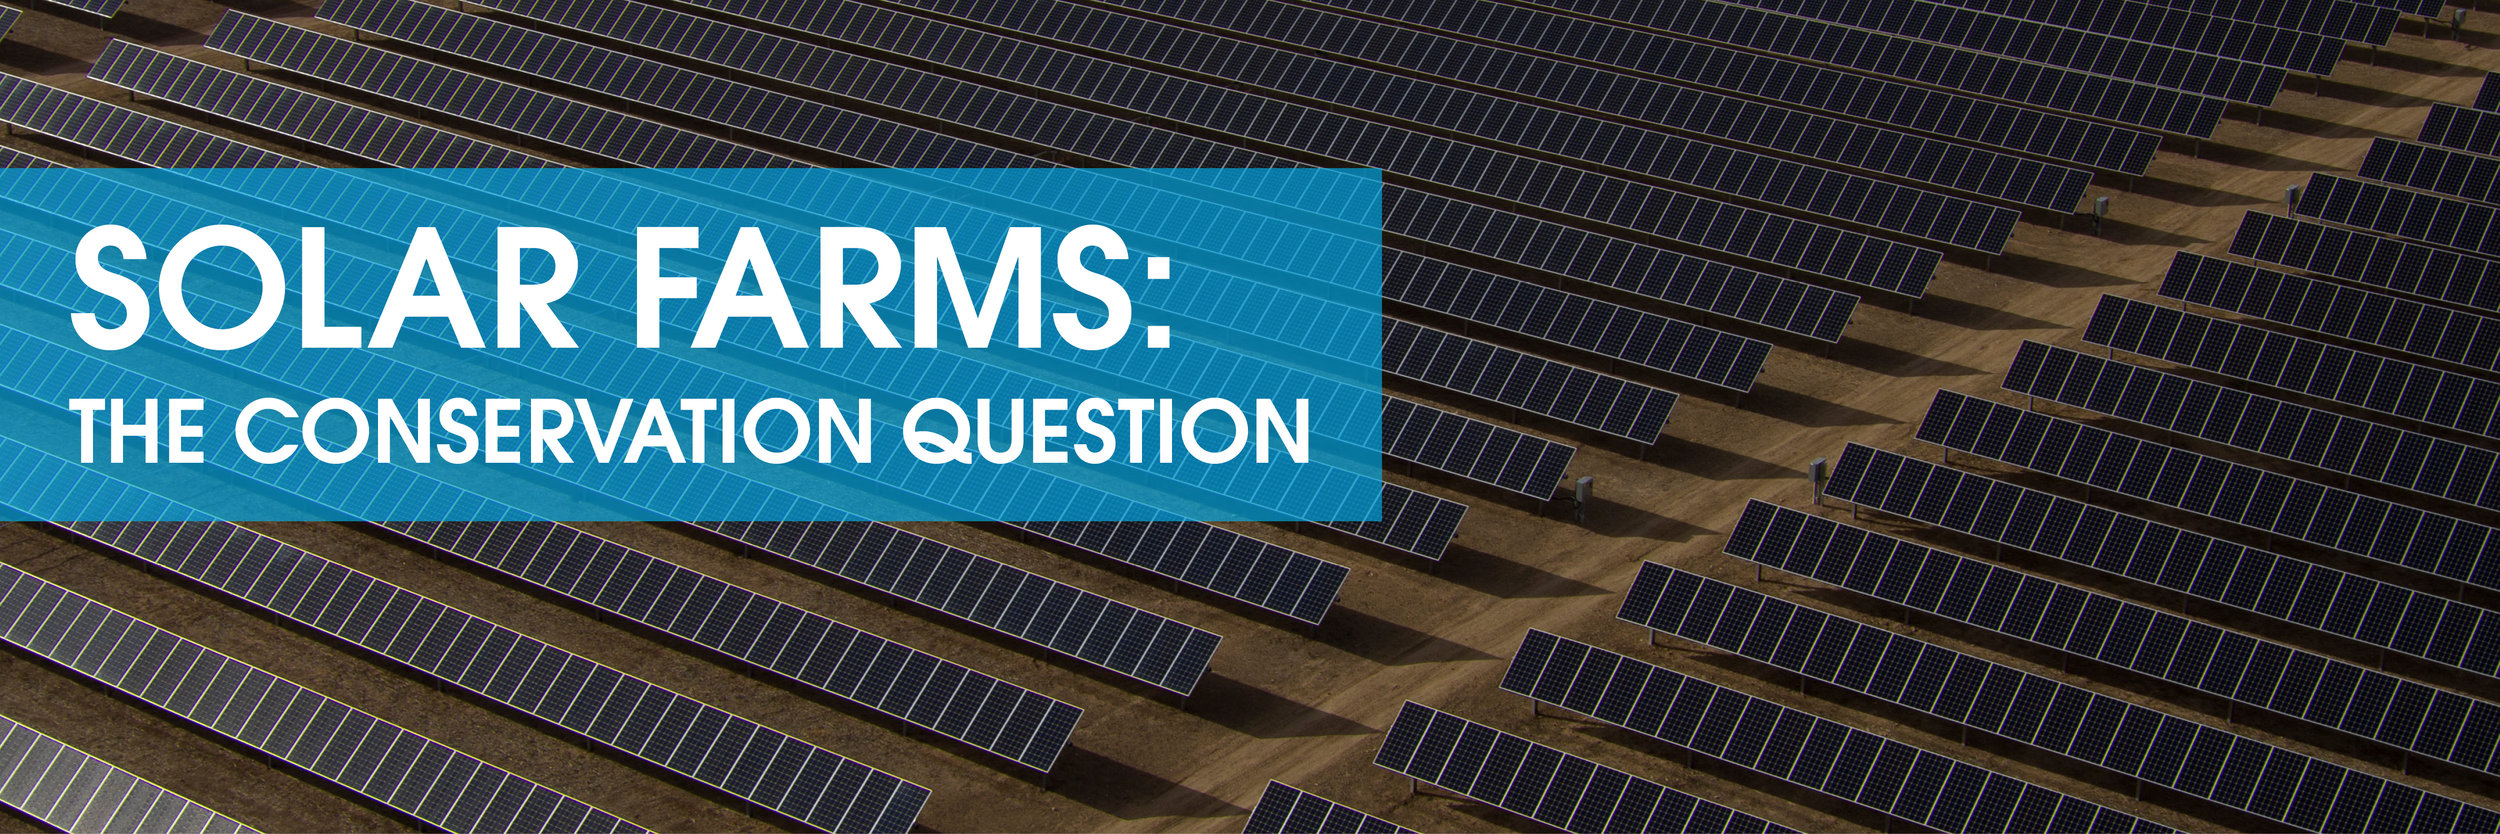 solarfarm_conservation_rooftopsolar_optimus_solar_florida.jpg